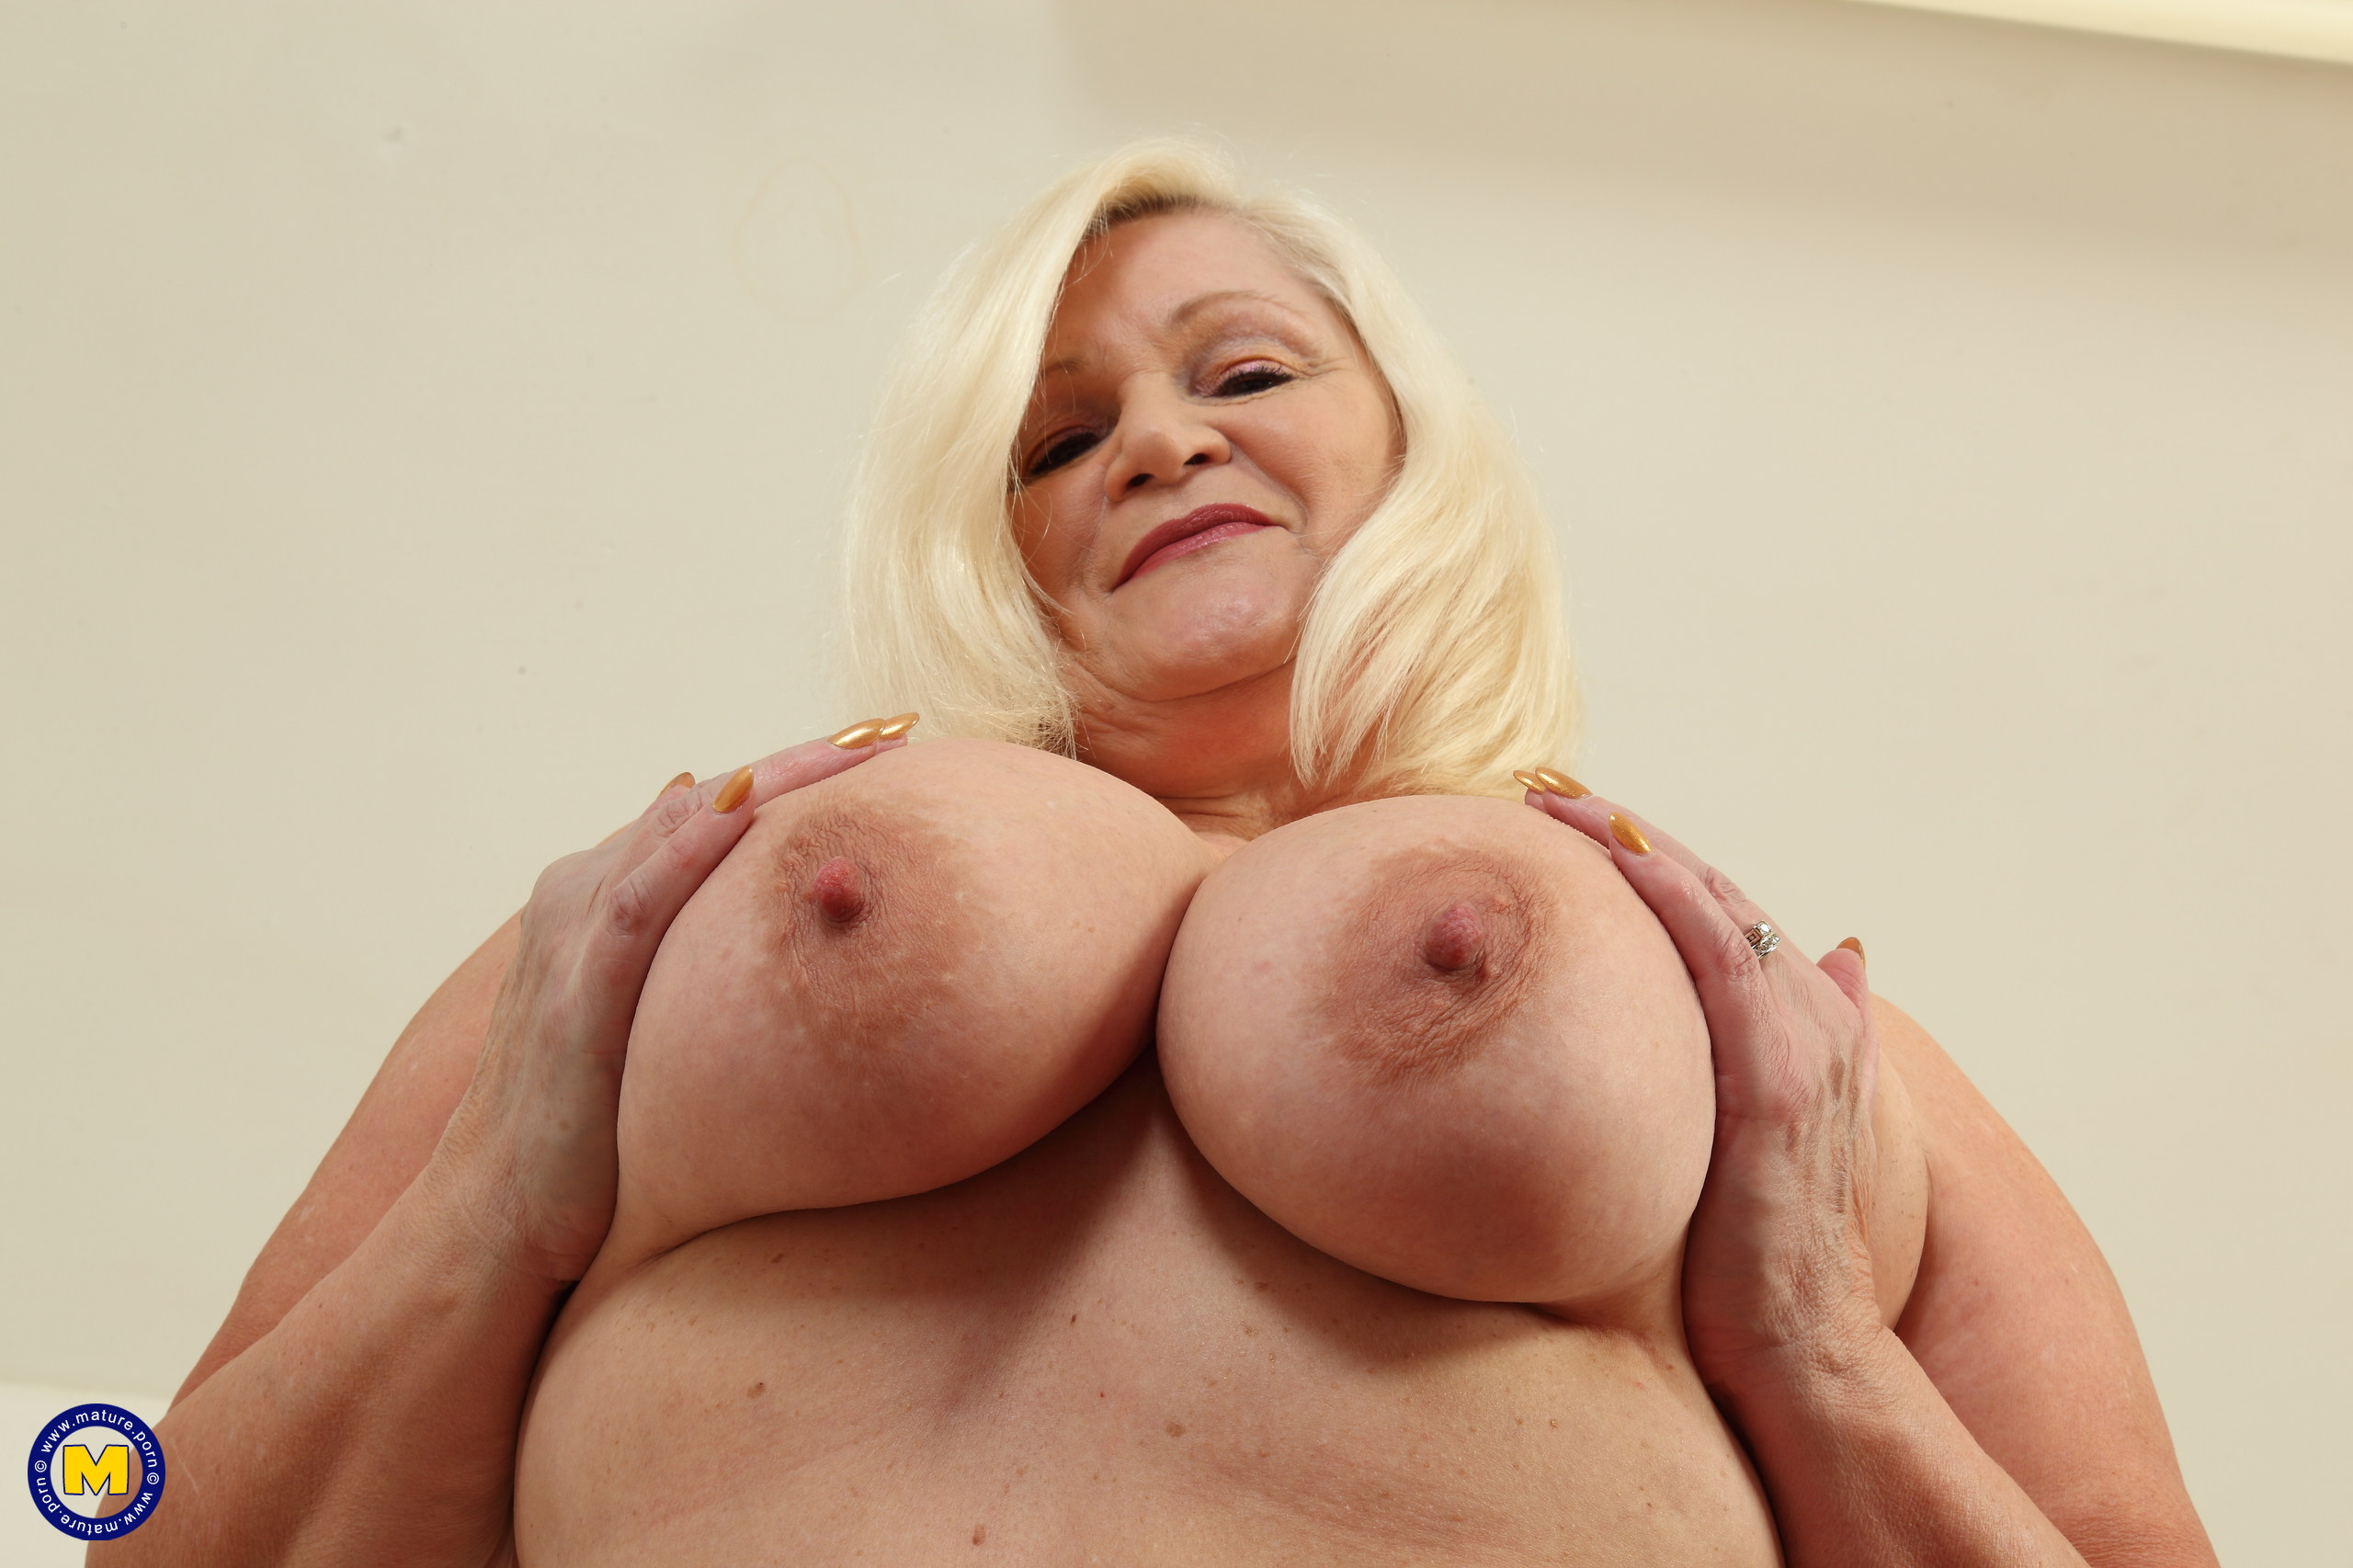 Lacey starr gets her granny ass fucked 10